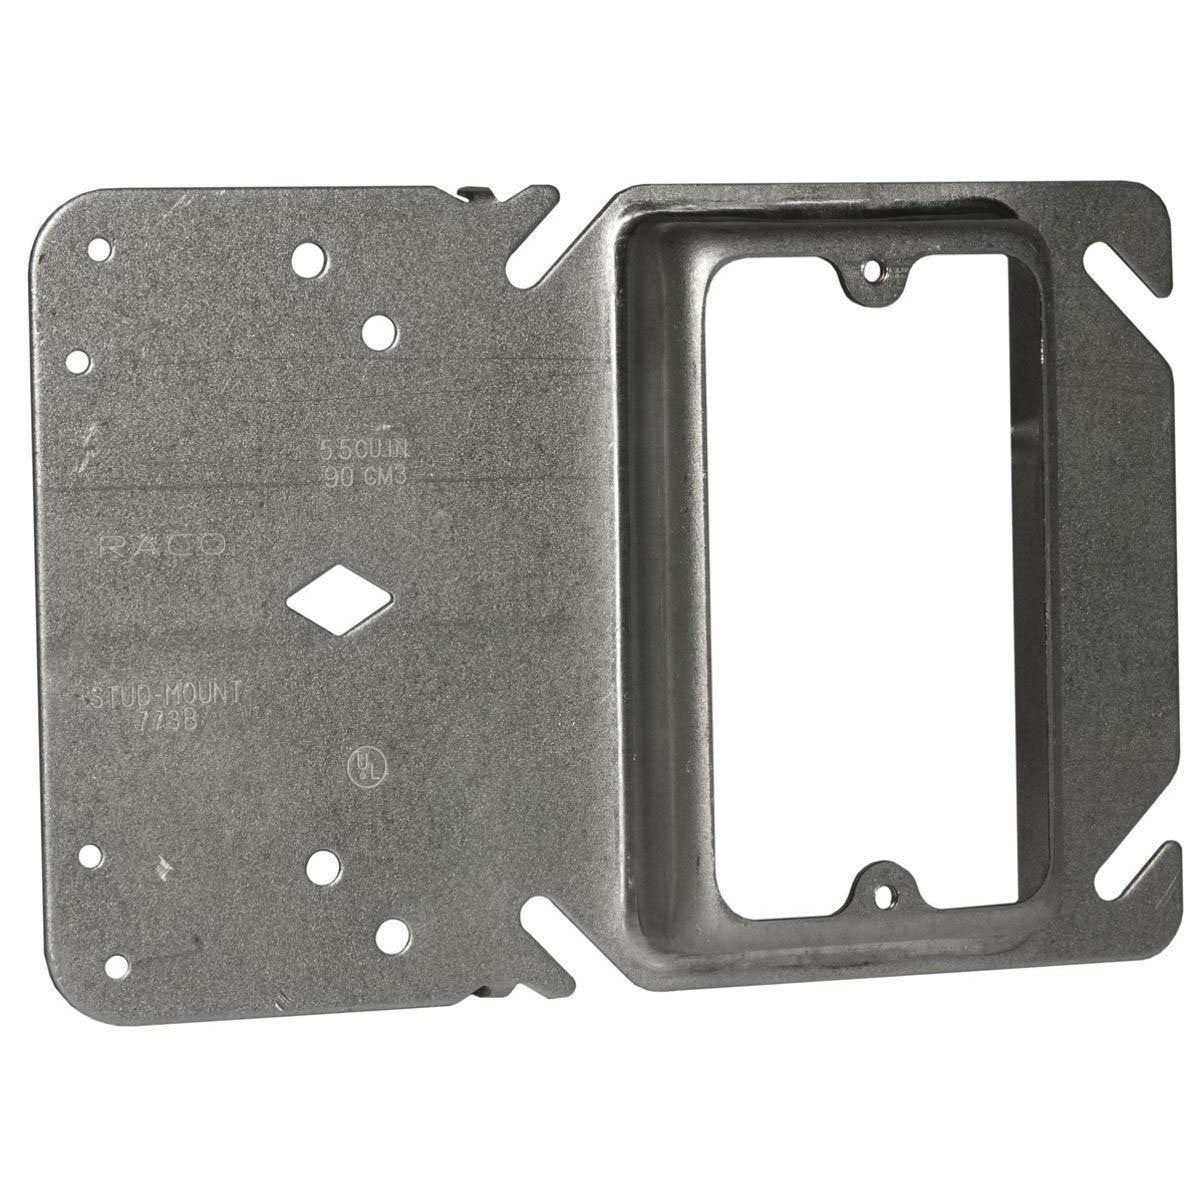 4 Inch Square 2 Inch Raised One Gang Device Ring-5 per case